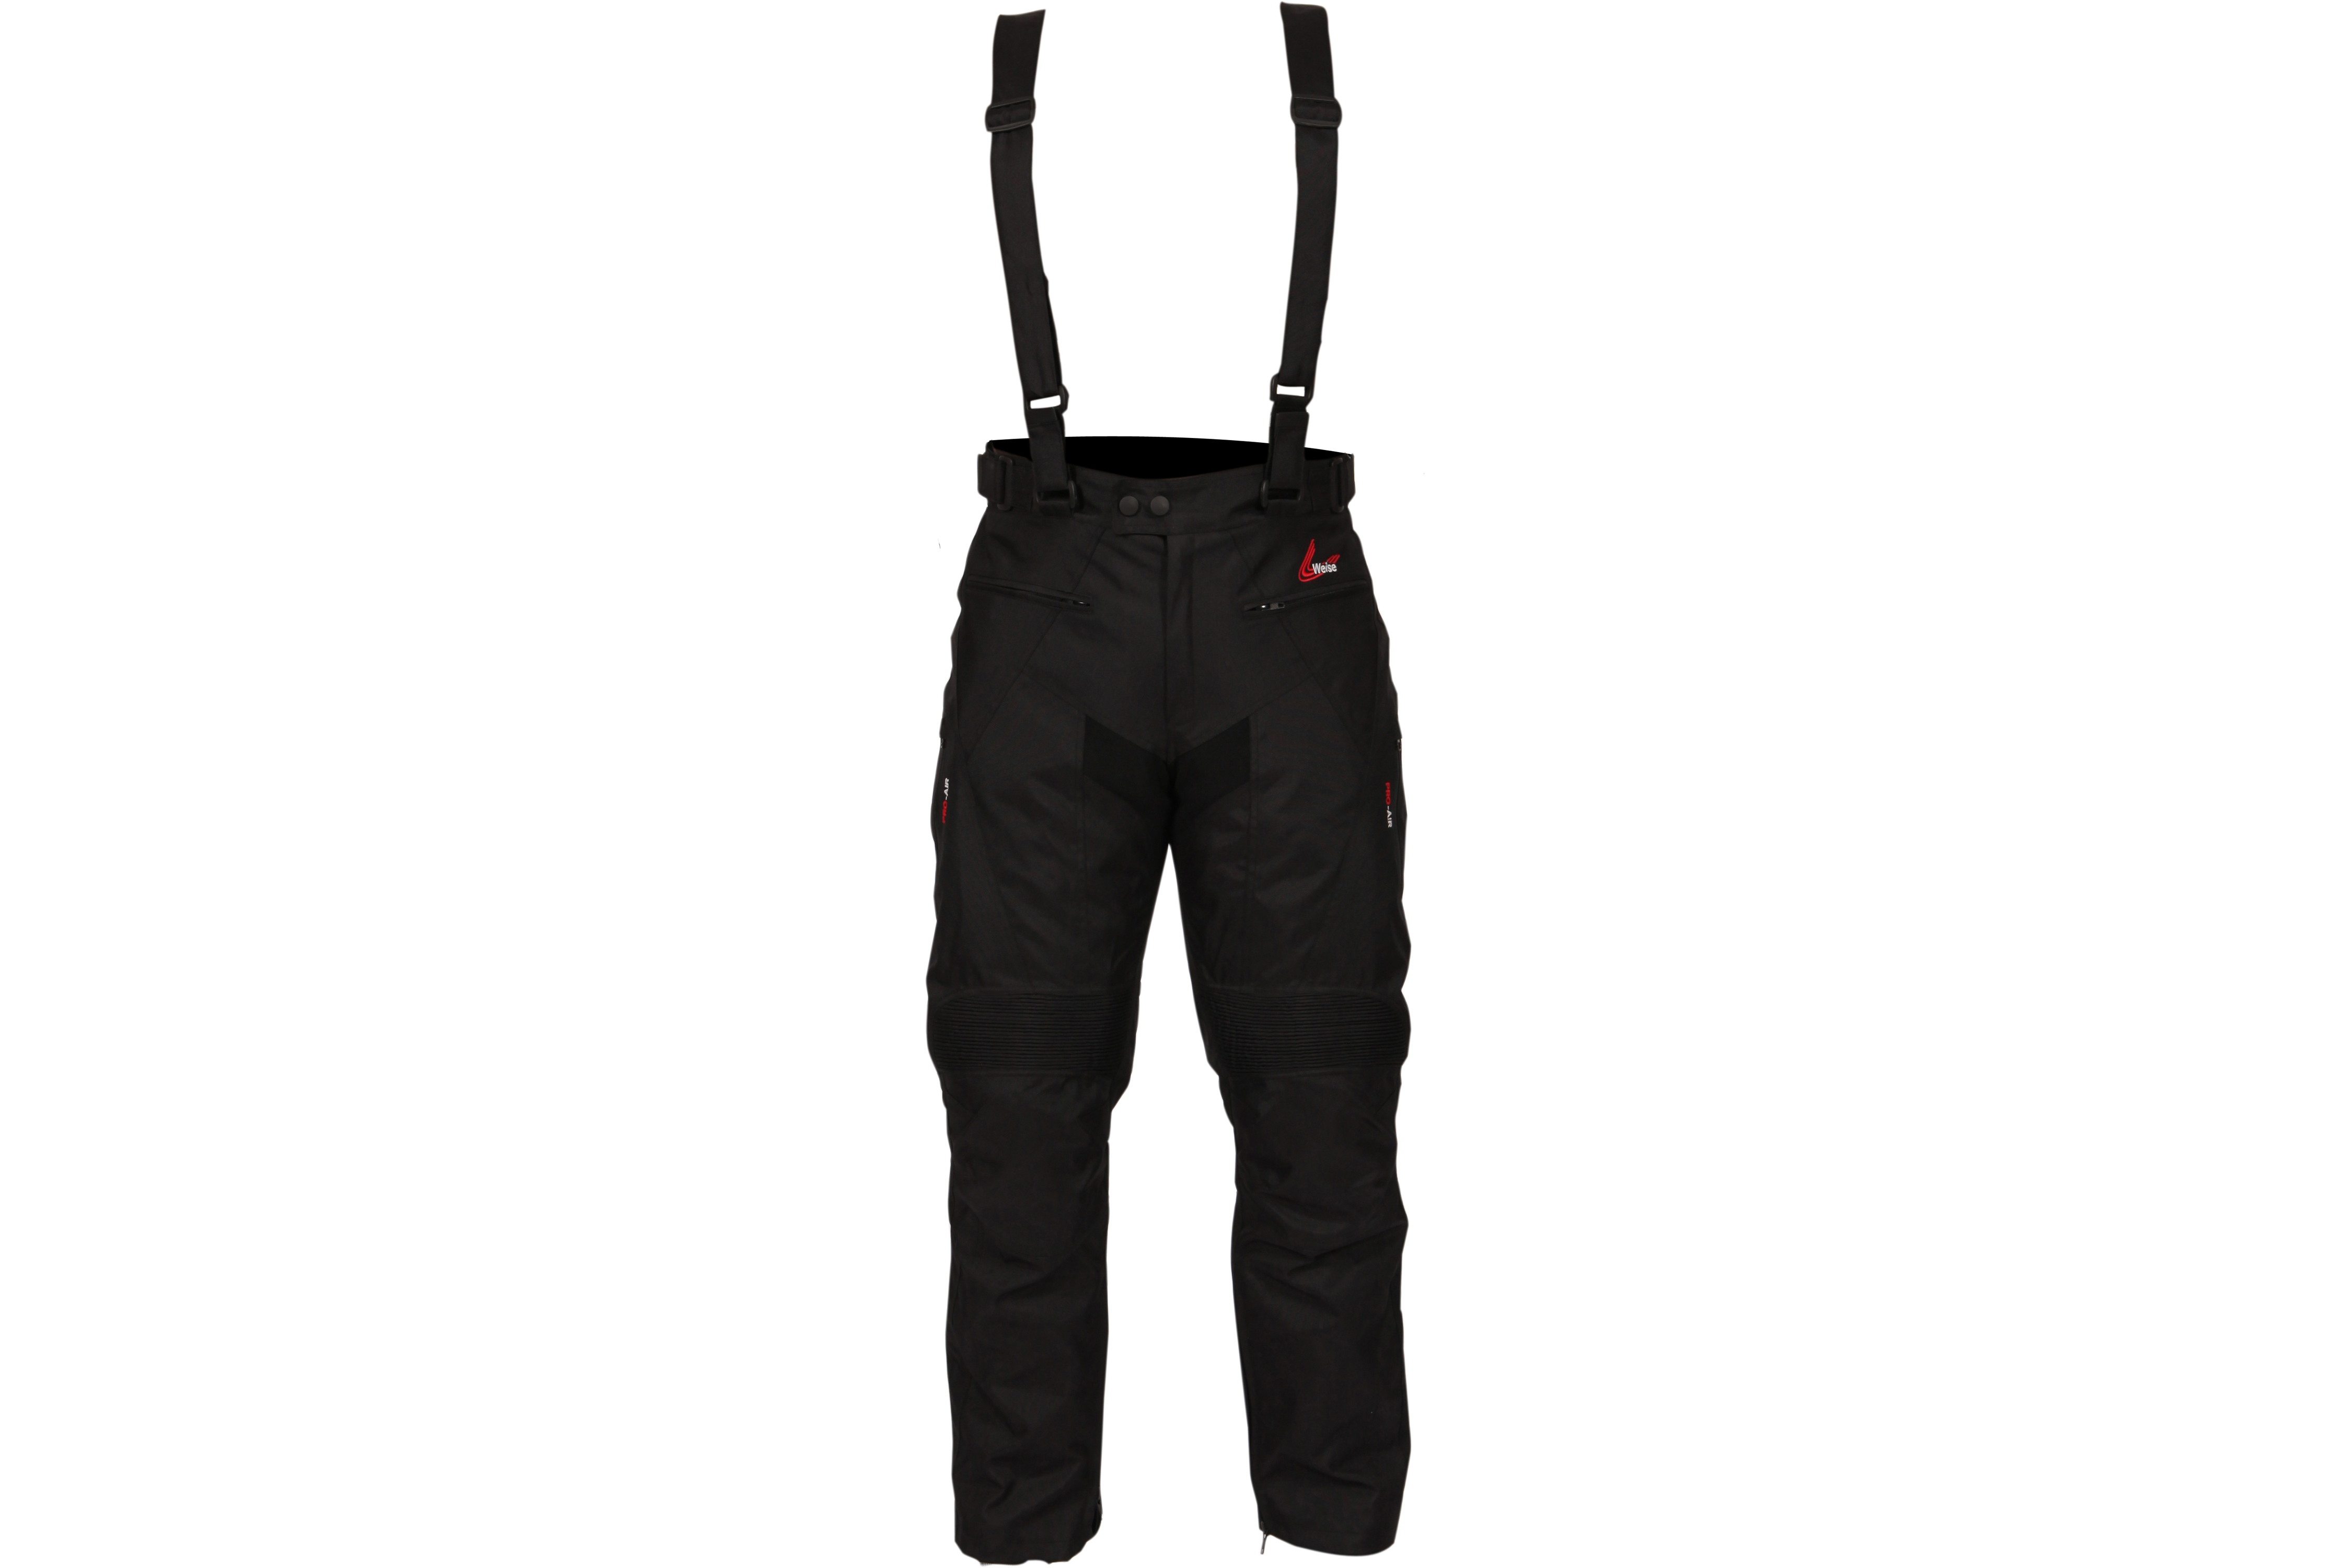 Tested: Weise Marin trousers